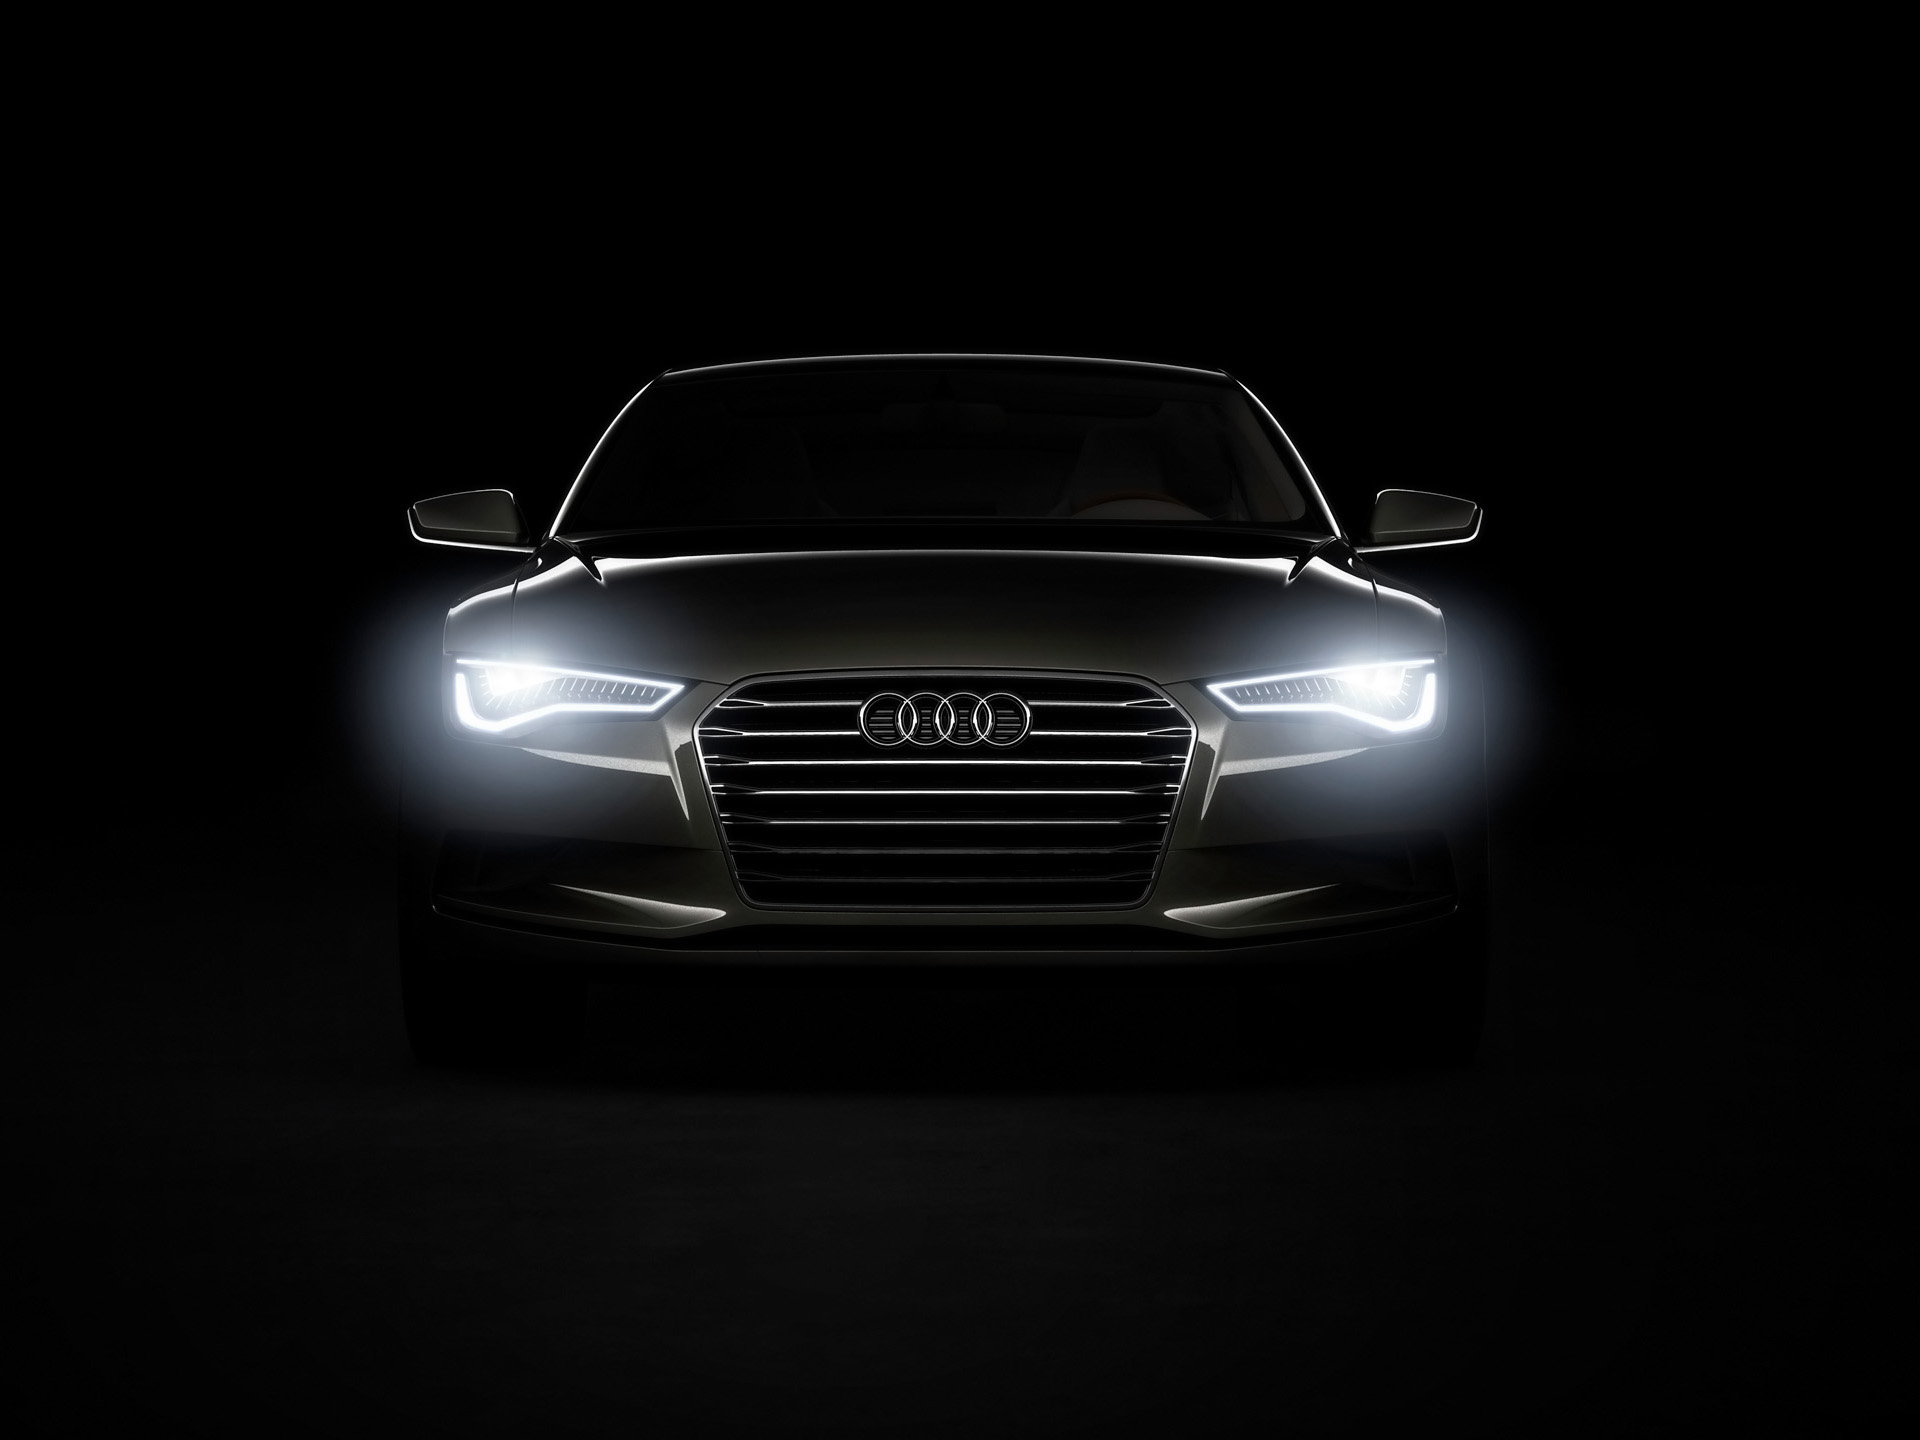 Car Lights Wallpaper